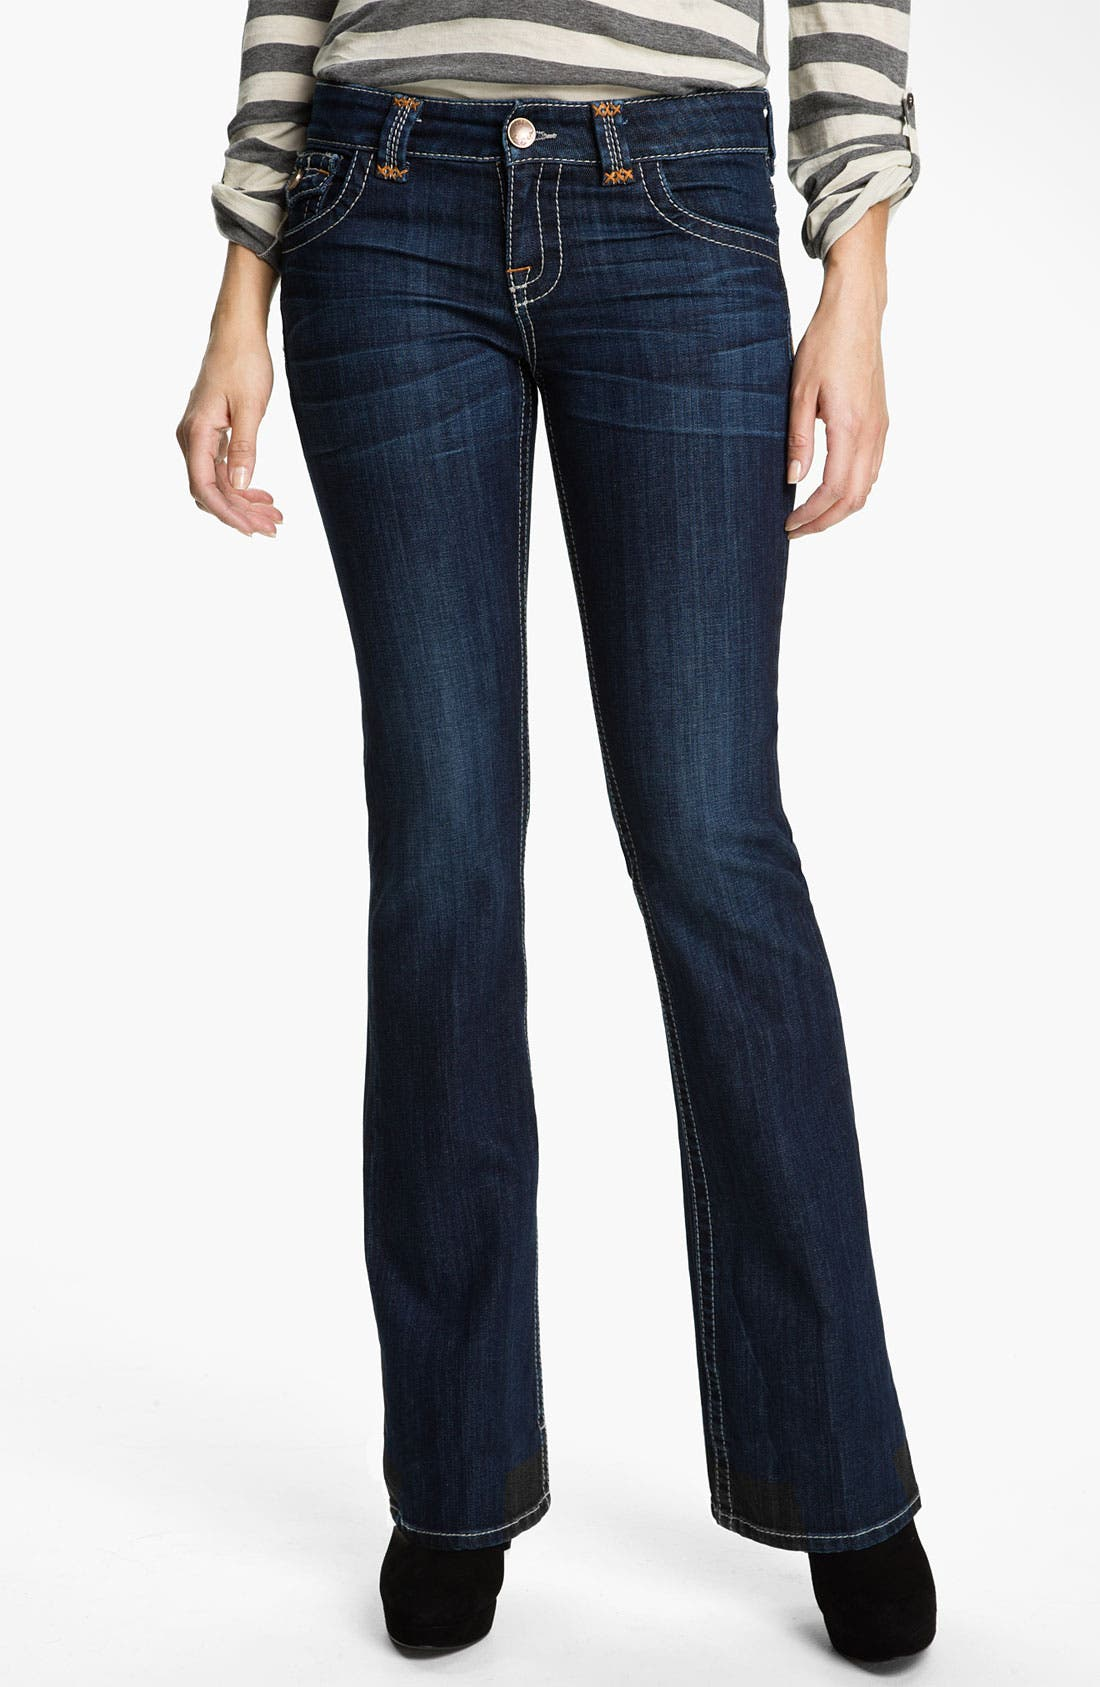 Main Image - KUT from the Kloth Heavy Stitch Bootcut Jeans